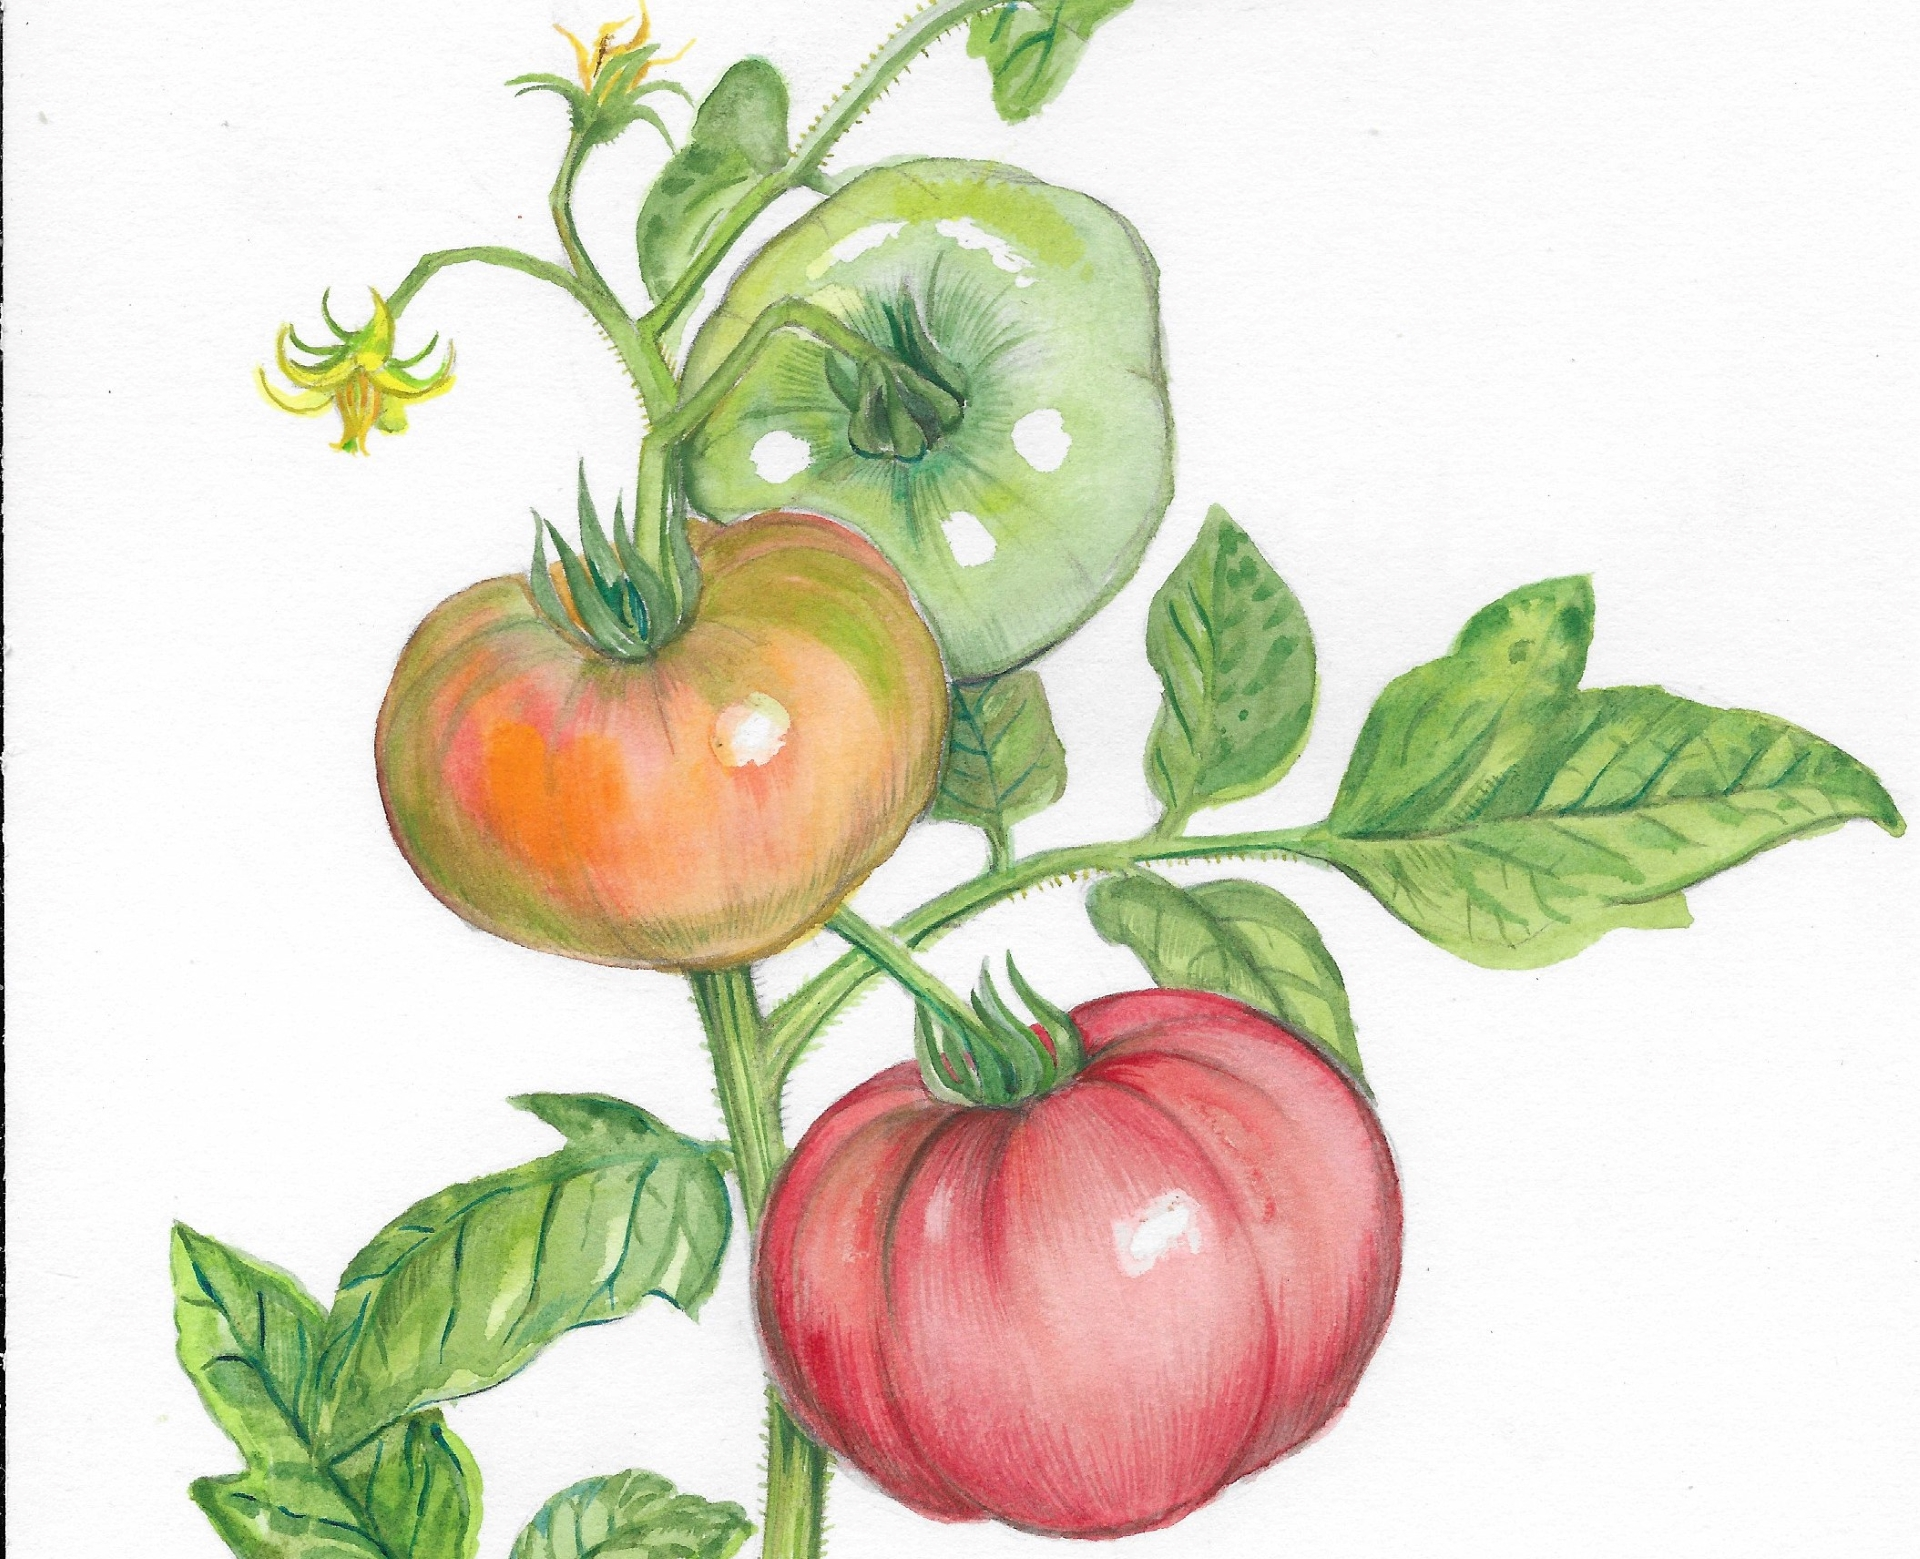 Tomato Anxiety: So many choices, so little time!